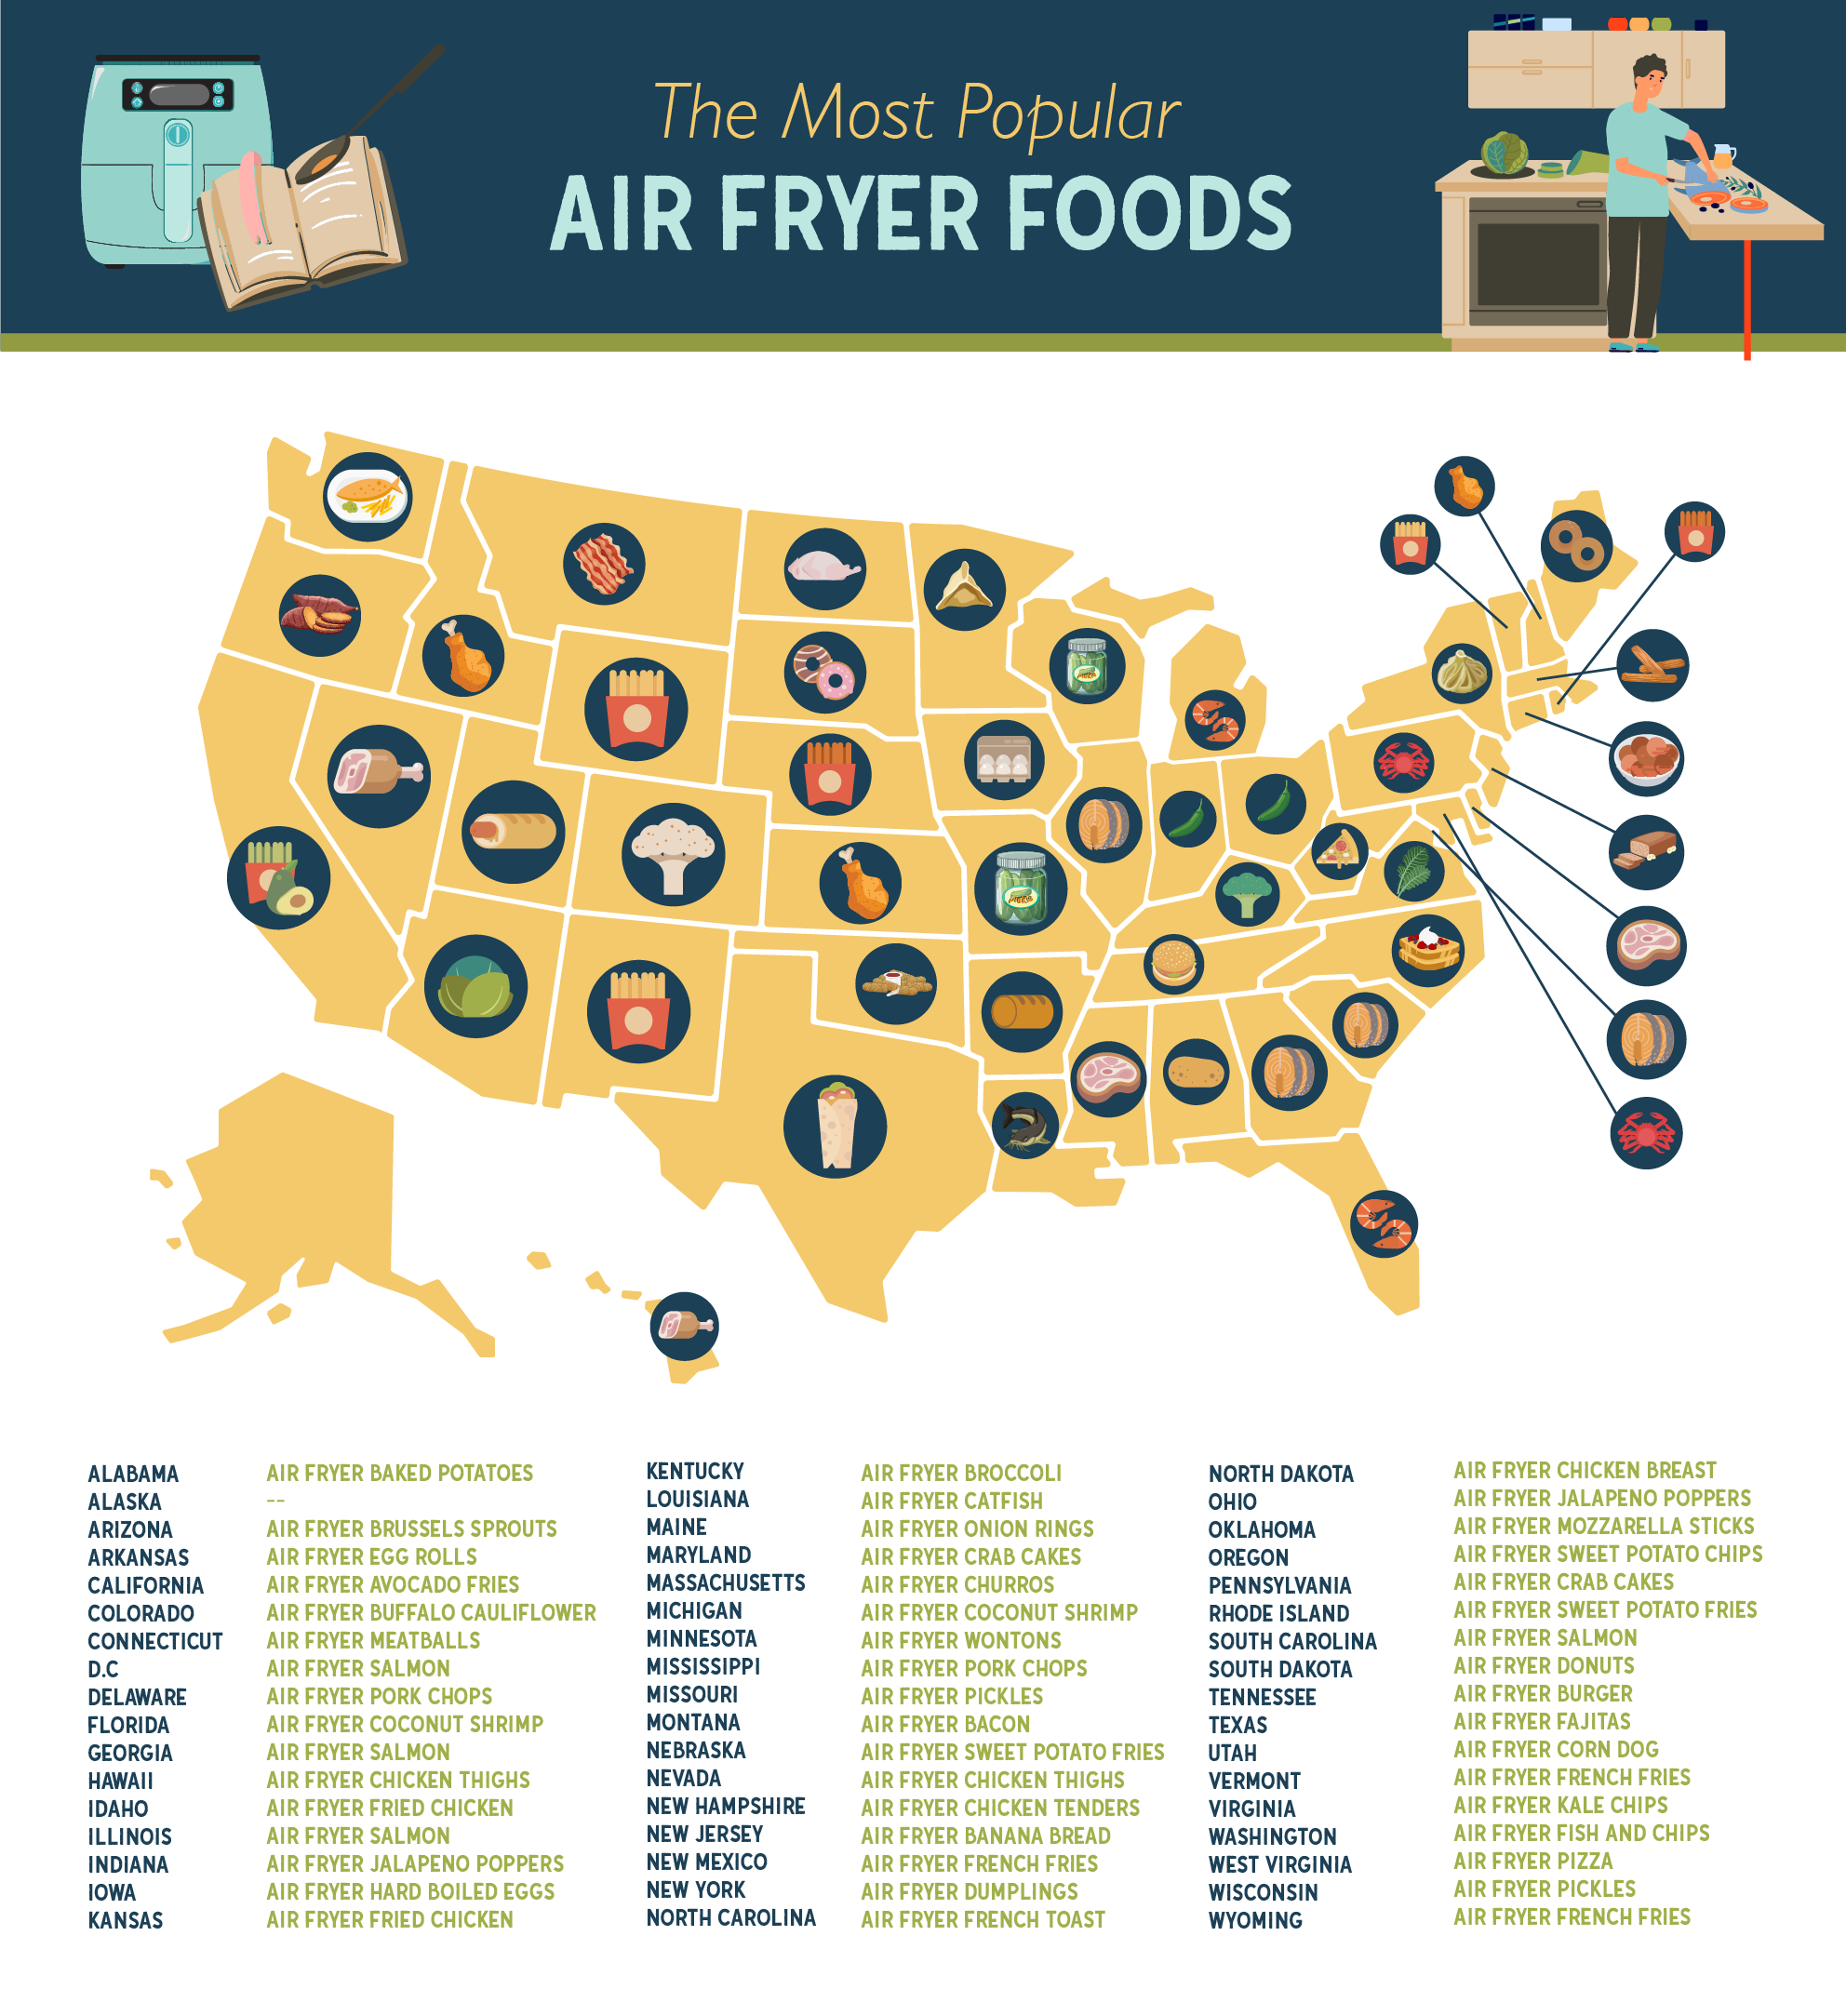 US map showing the most popular air fryer food by state